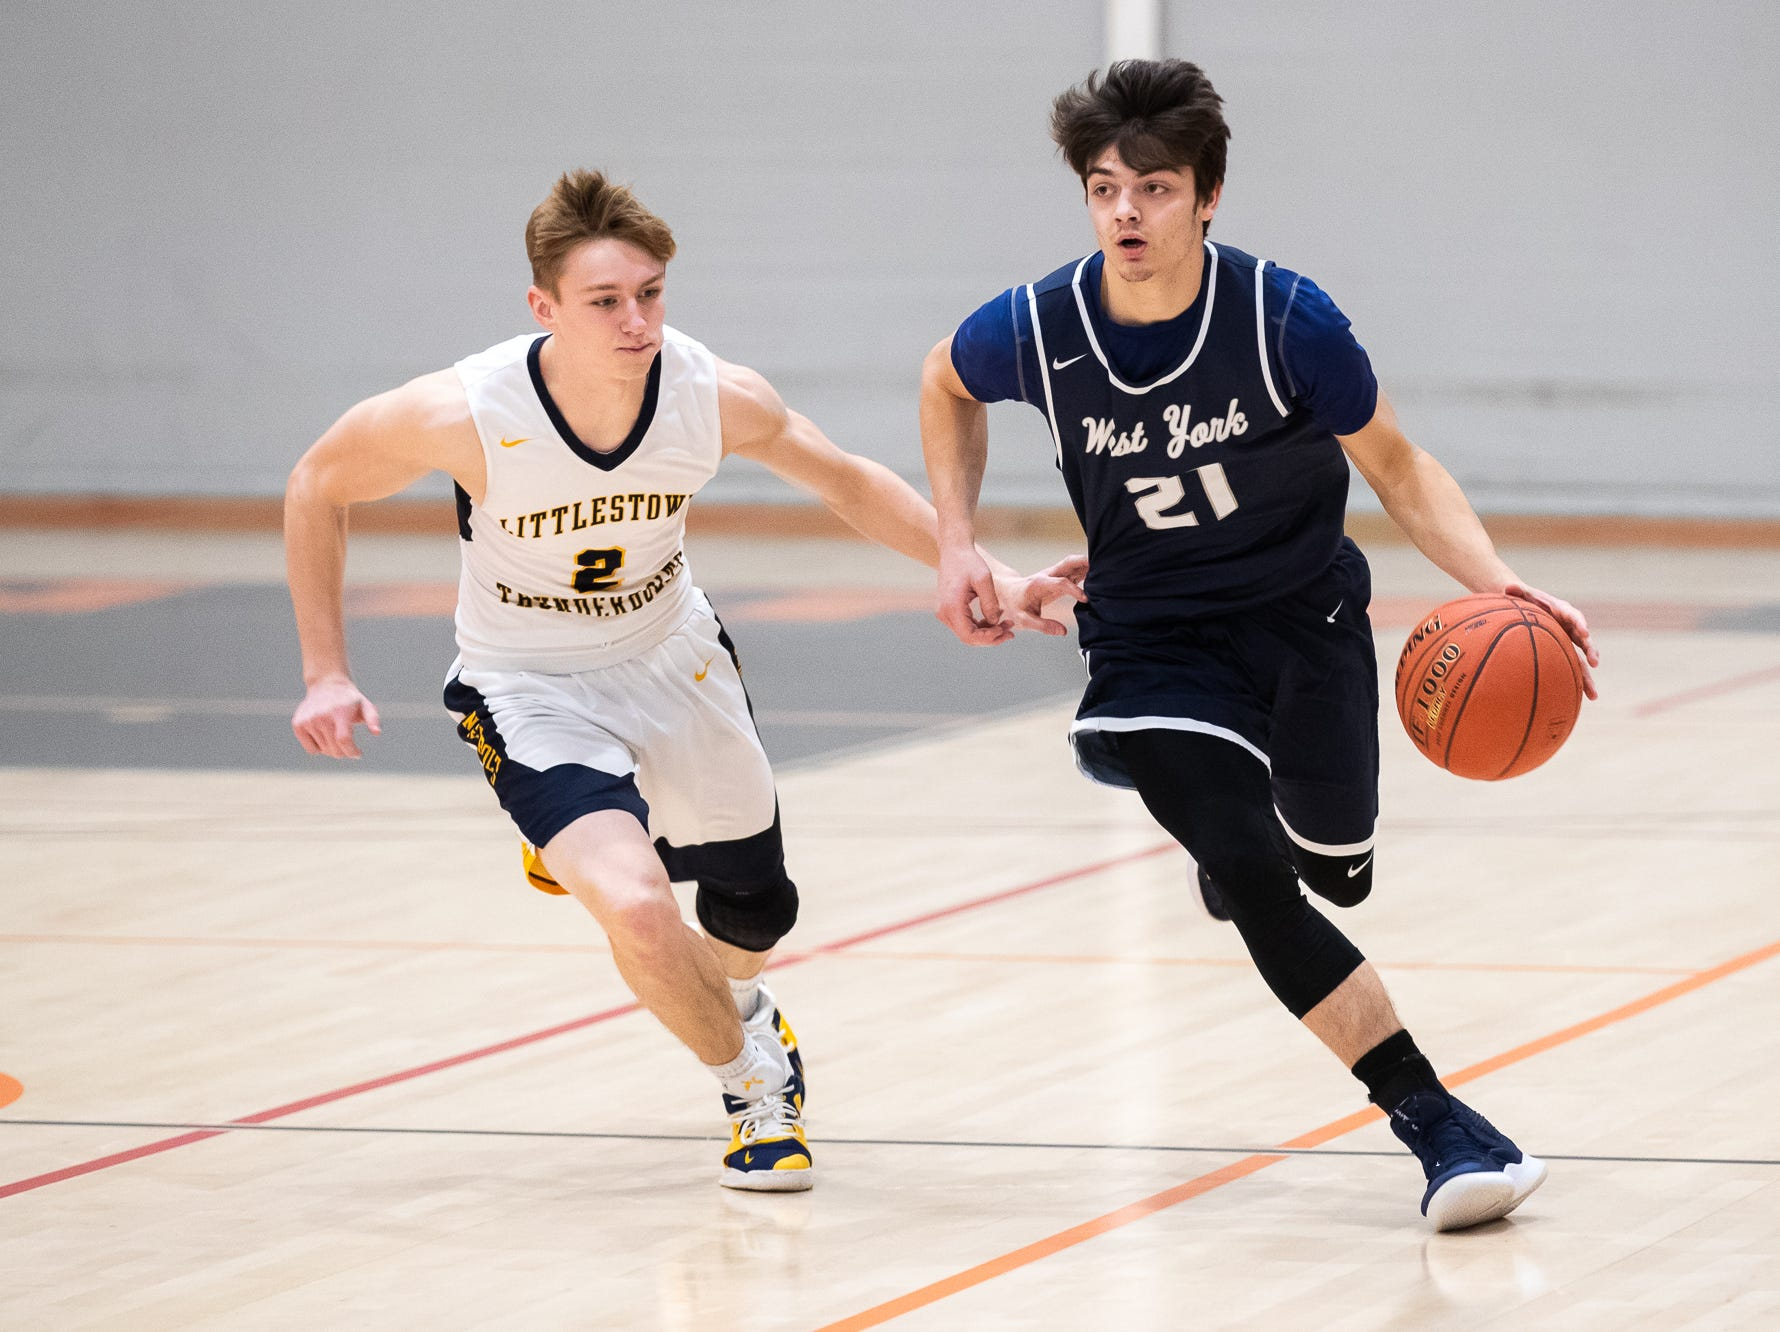 West York's Jared Shearer (21) drives down the court chased by Littlestown's Jakob Lane (2) during the first half of the YAIAA boys' basketball quarterfinals between Littlestown and West York, Saturday, Feb. 9, 2019, at Central York High School. West York led Littlestown 33-31 at the half.